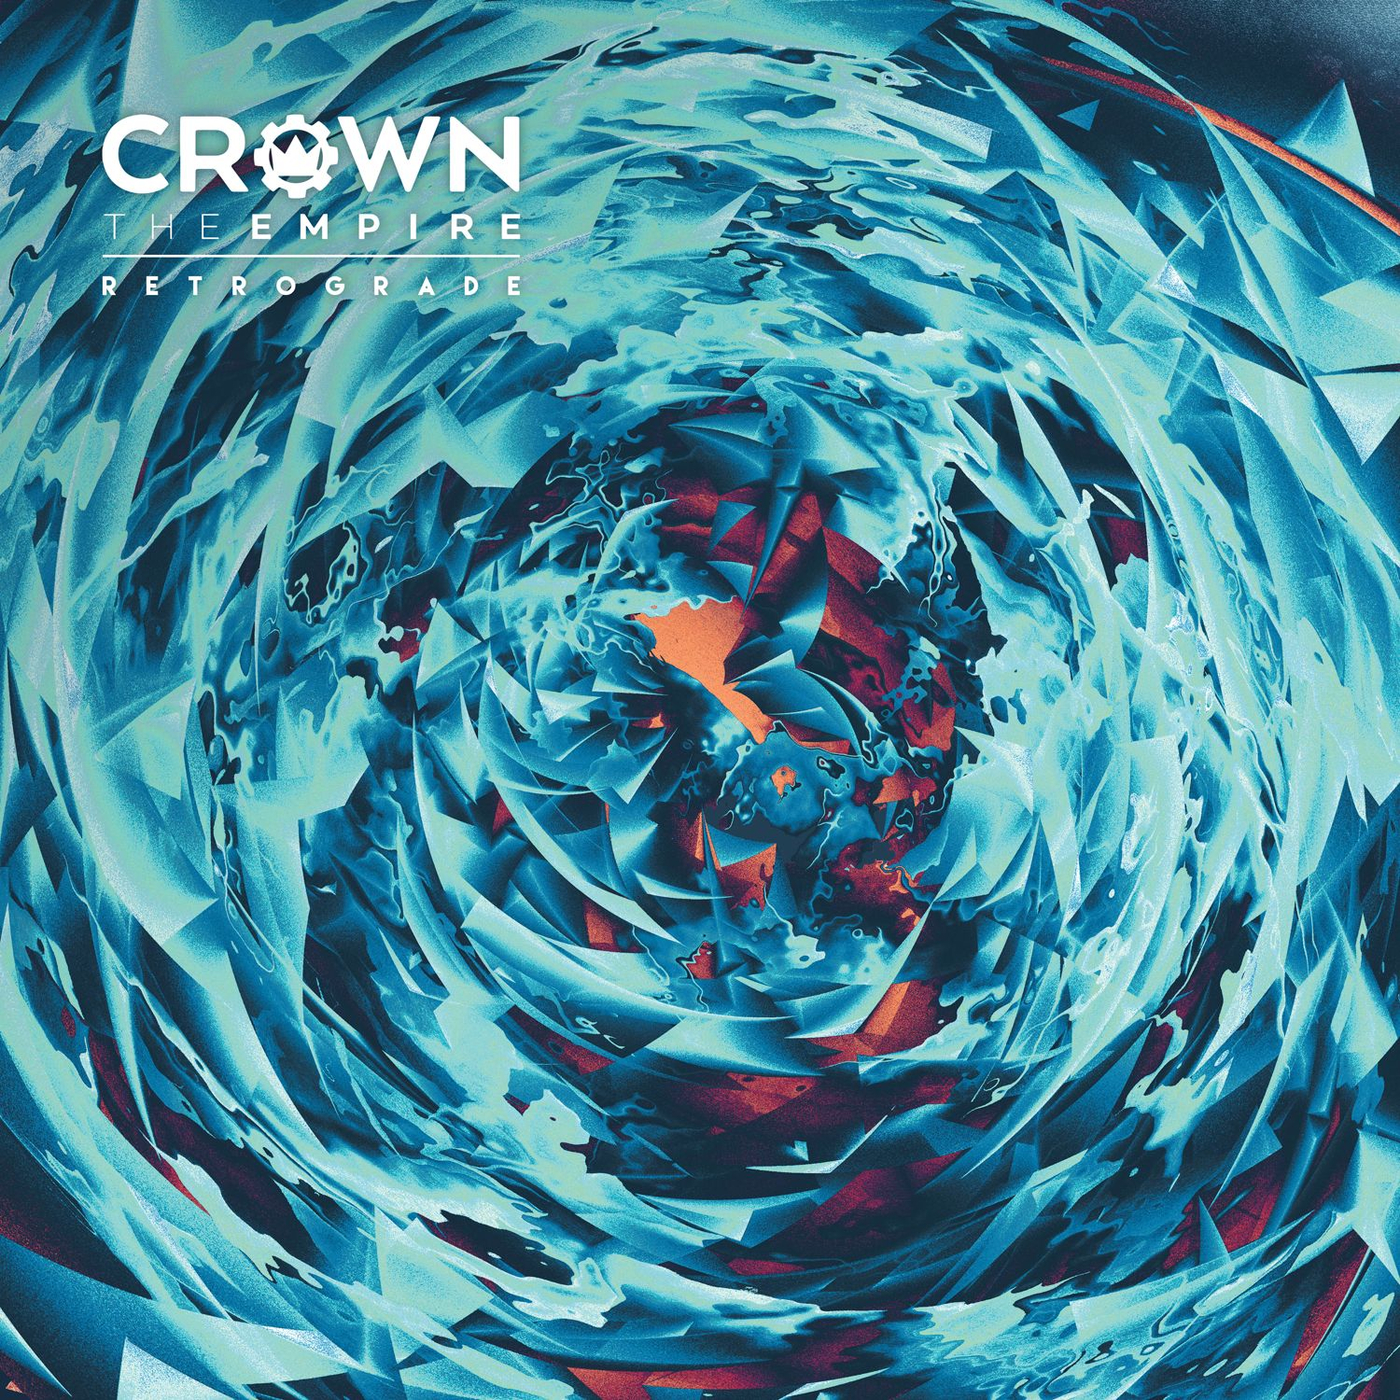 Crown The Empire - Weight of the World [single] (2016)